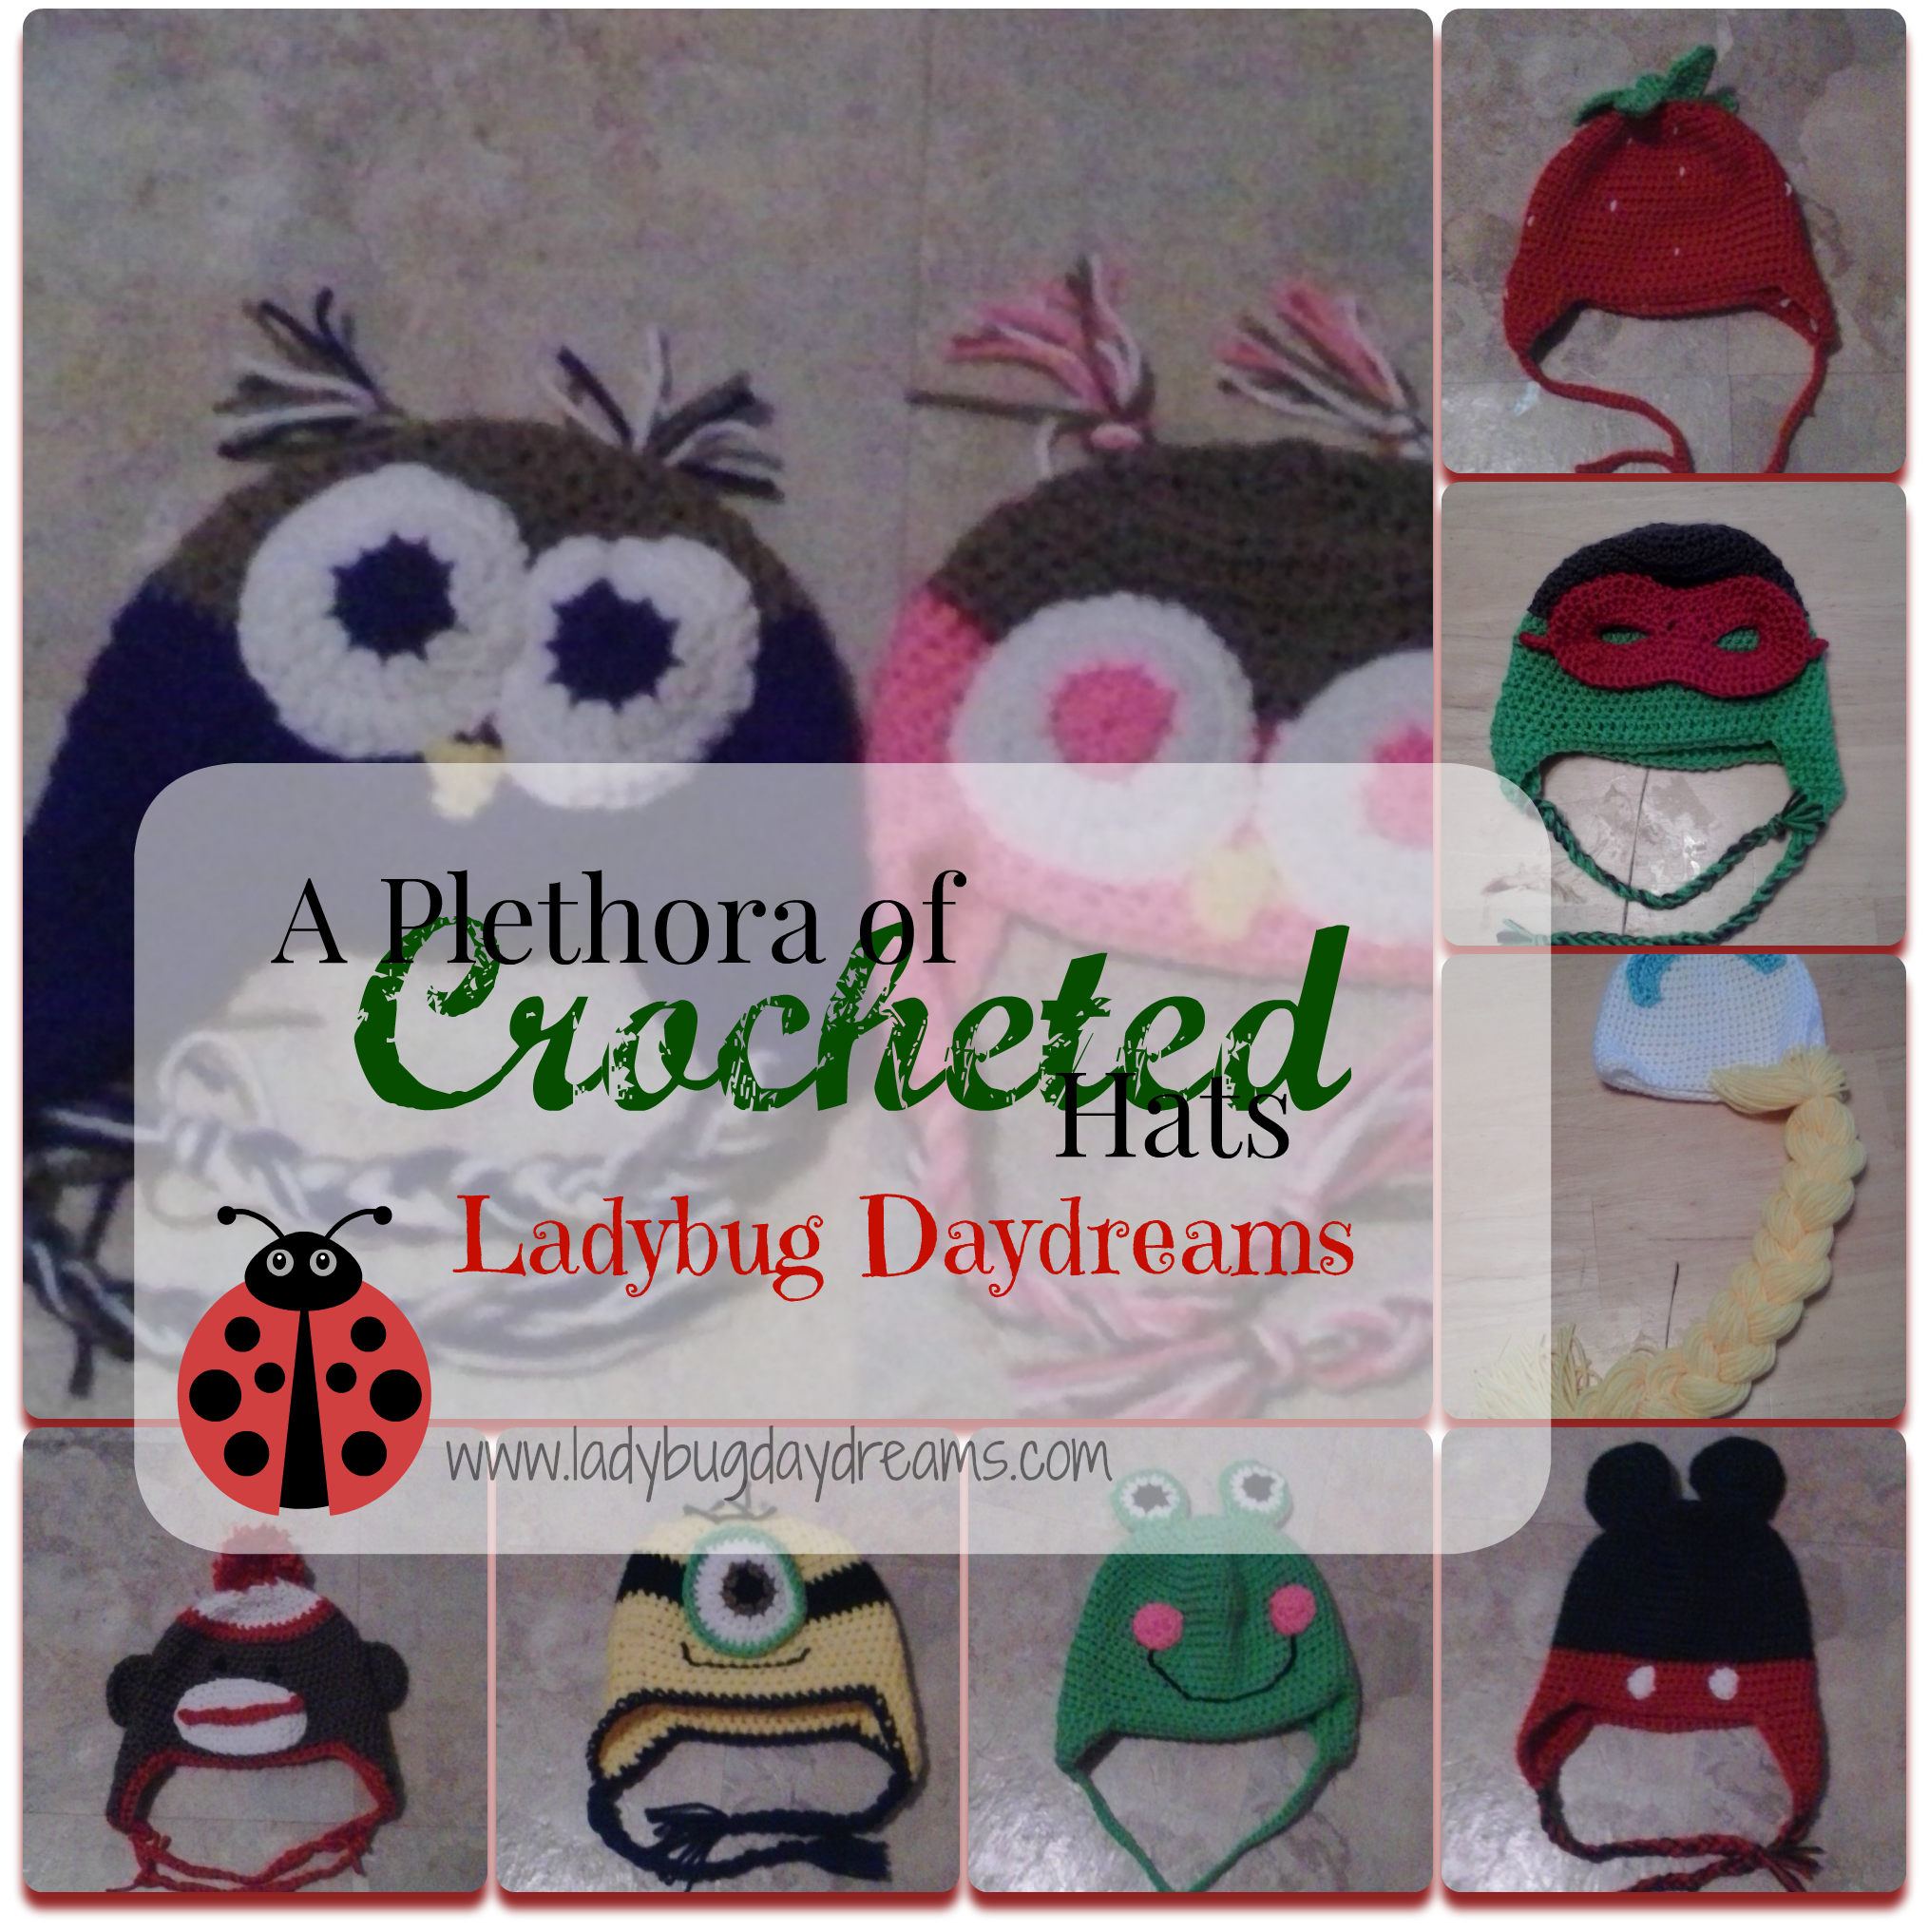 A Plethora of Crocheted Hats from Ladybug Daydreams